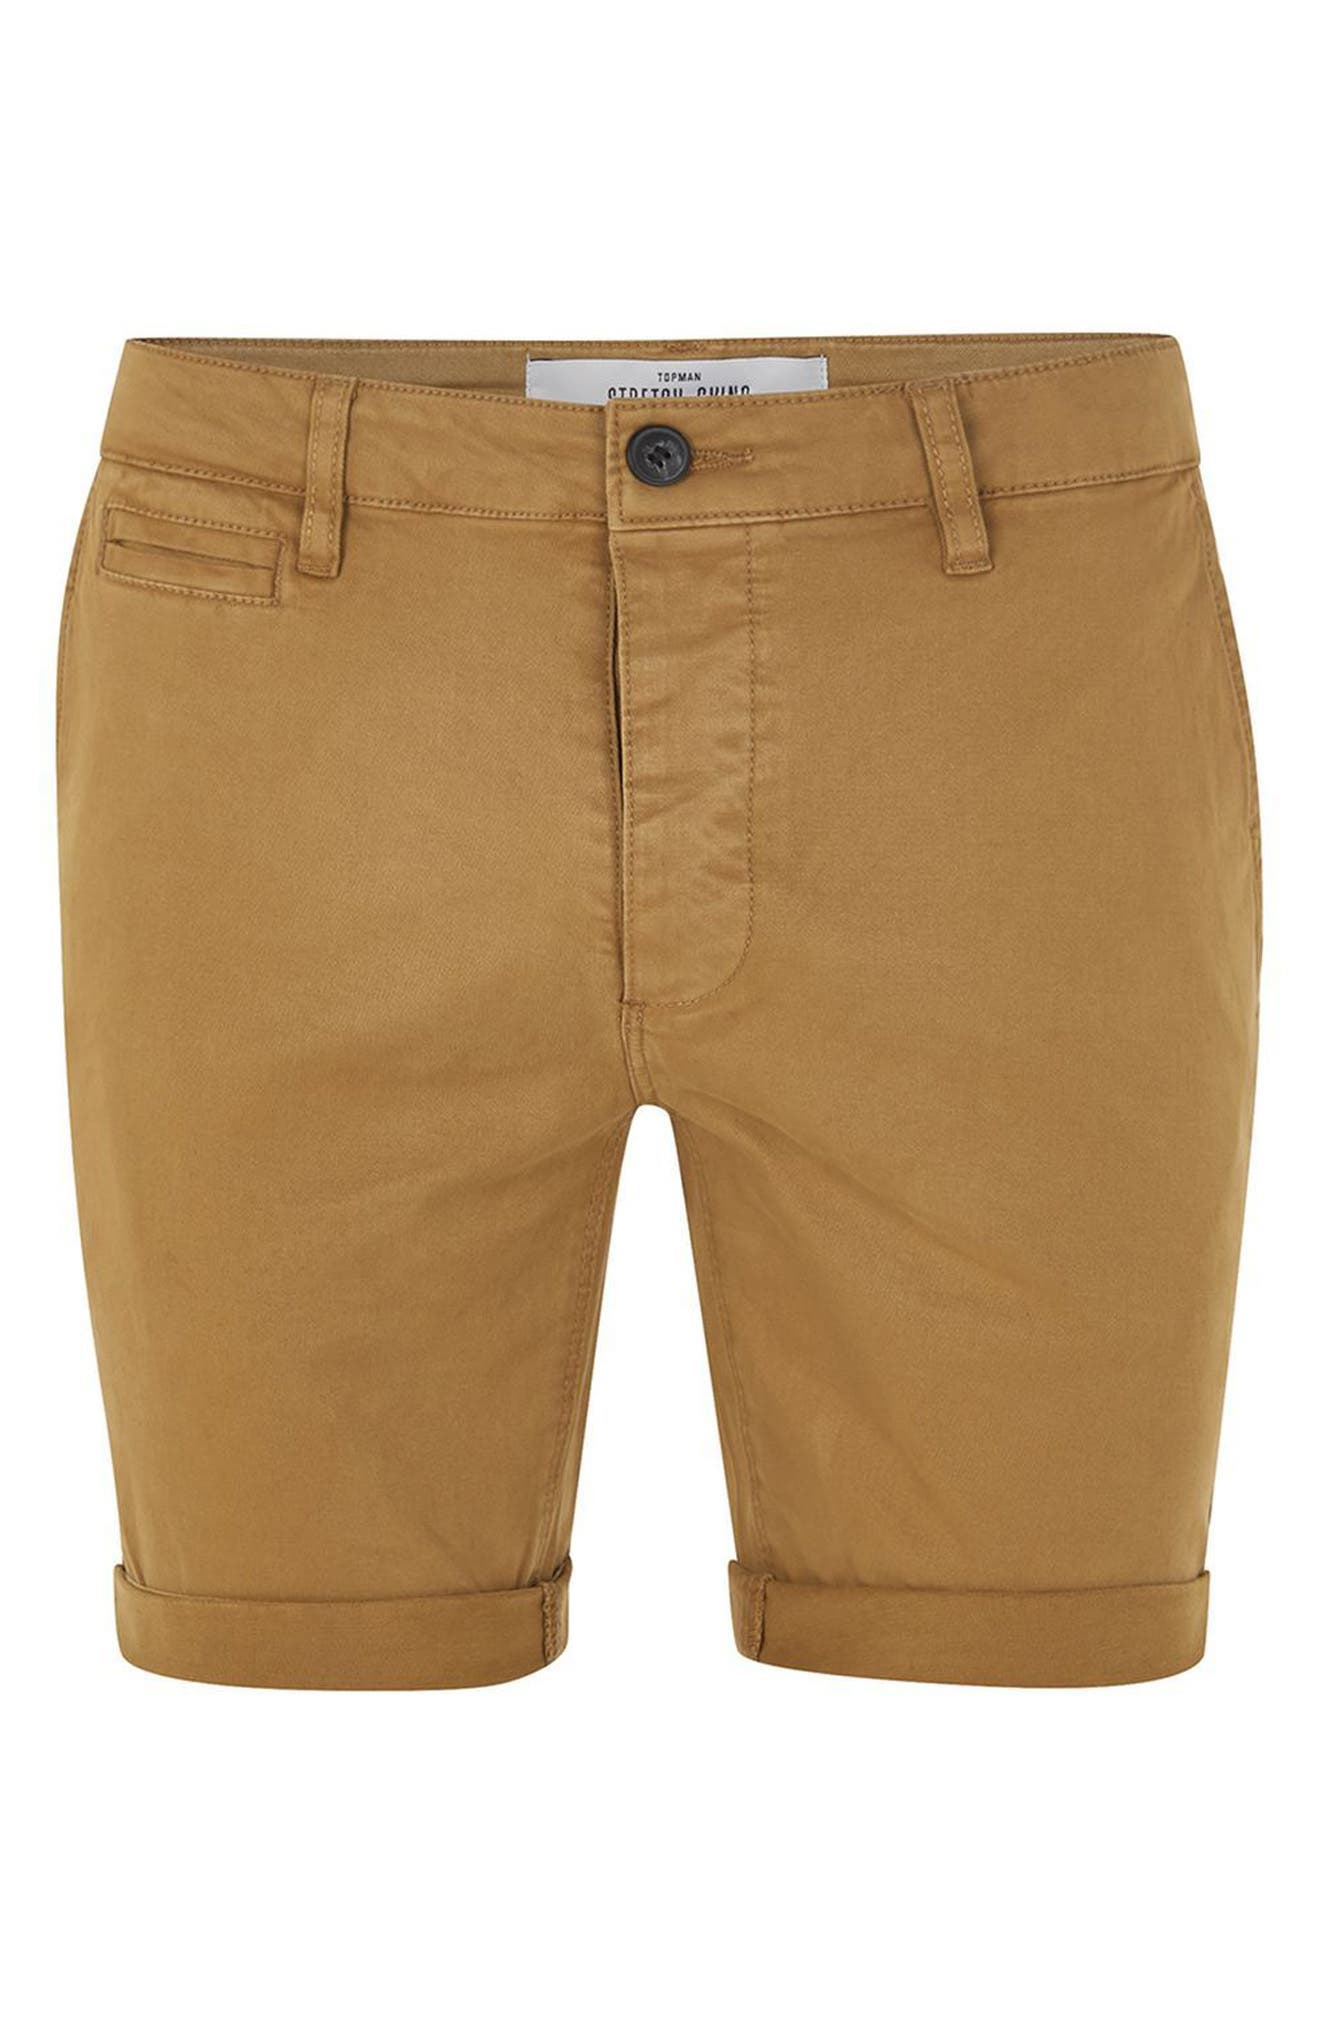 Stretch Skinny Chino Shorts,                             Alternate thumbnail 4, color,                             Yellow